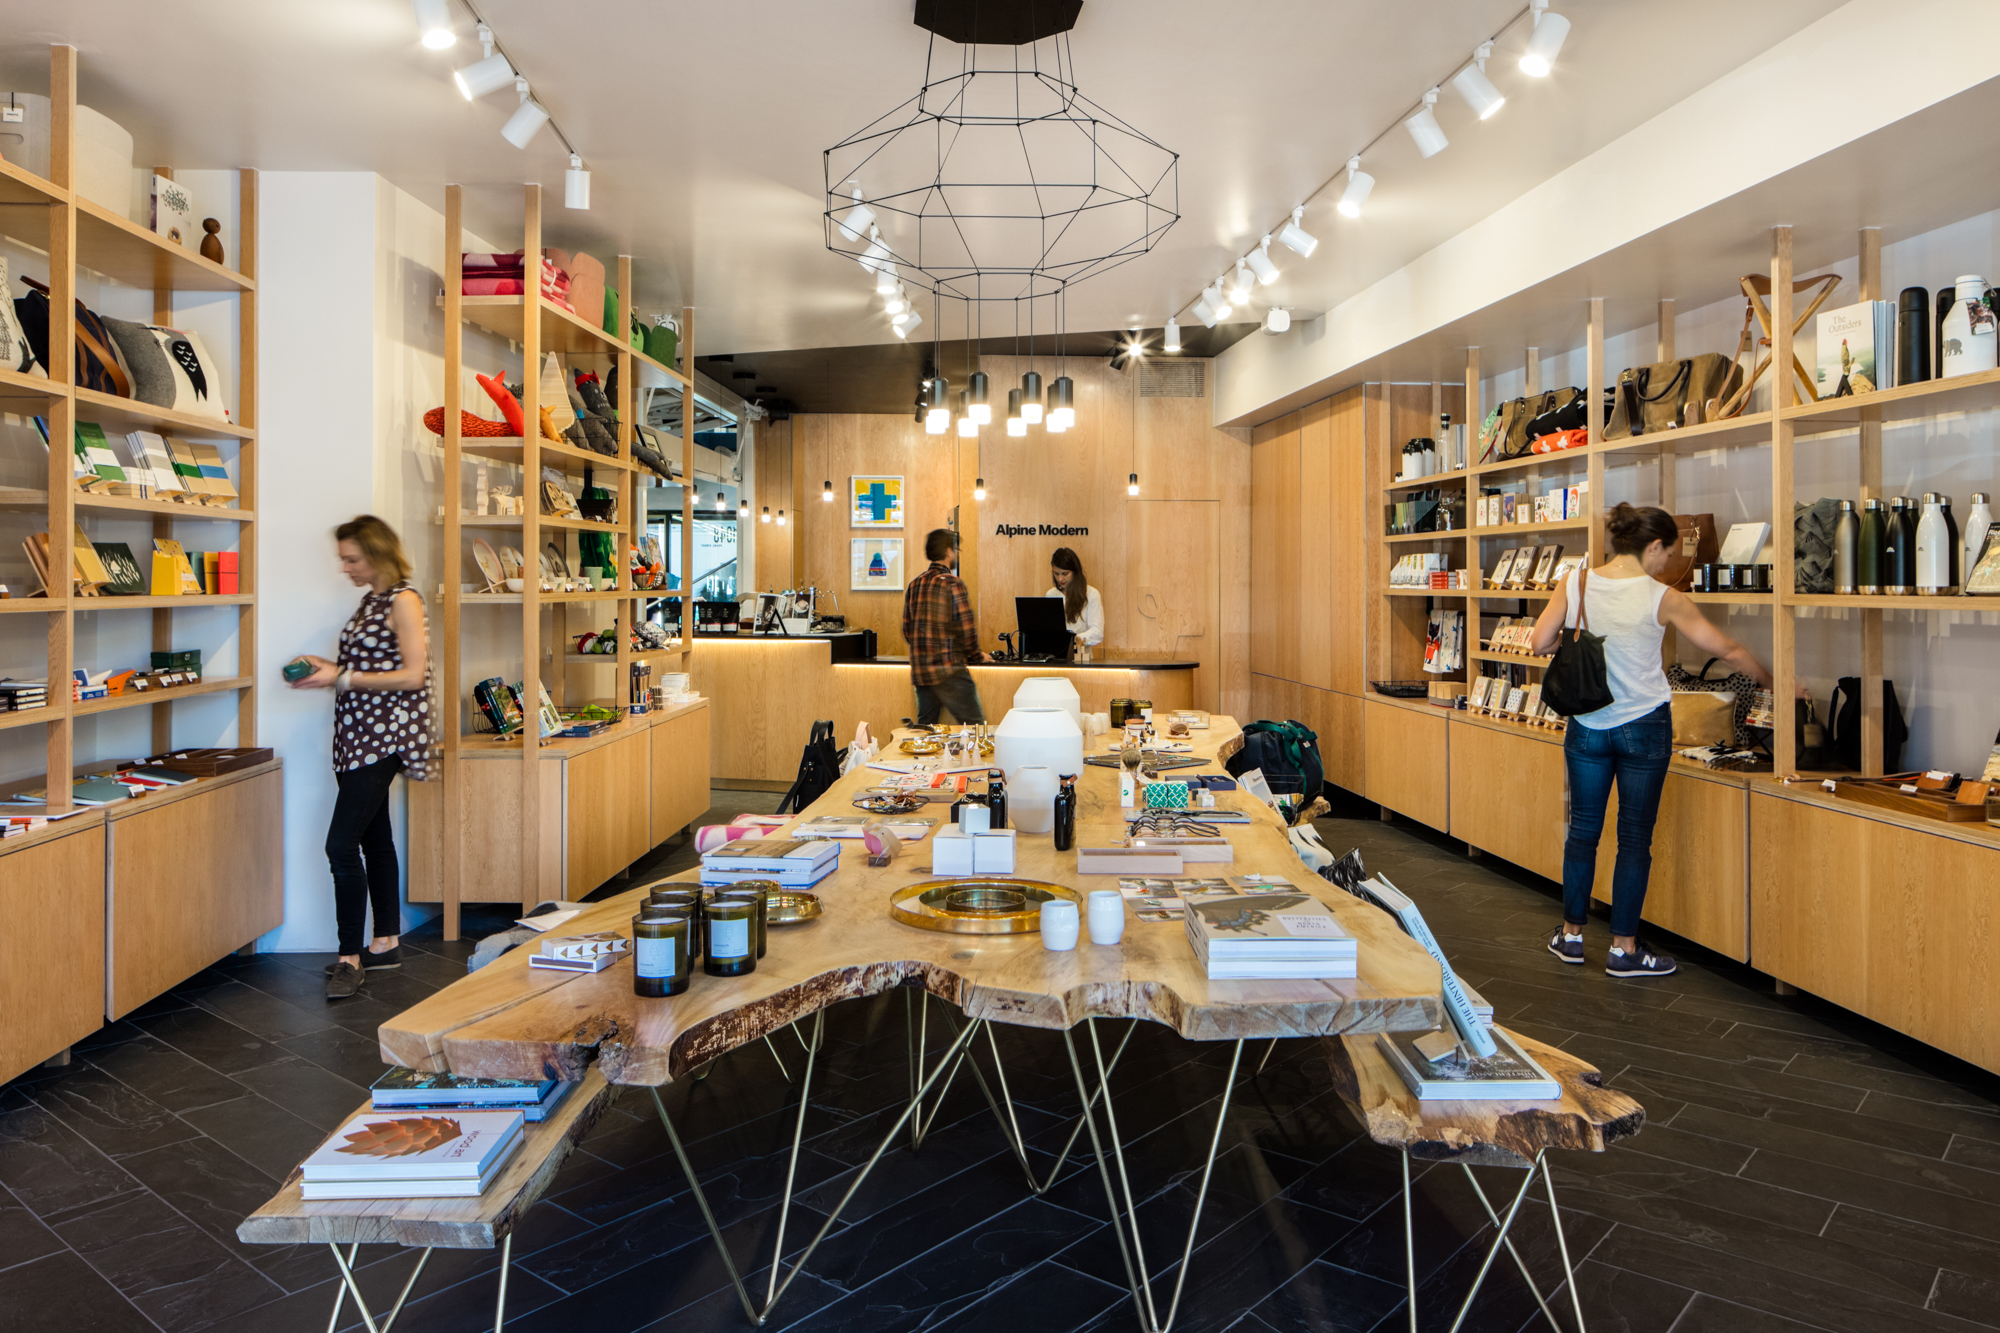 The new Alpine Modern Shop and Coffee Bar